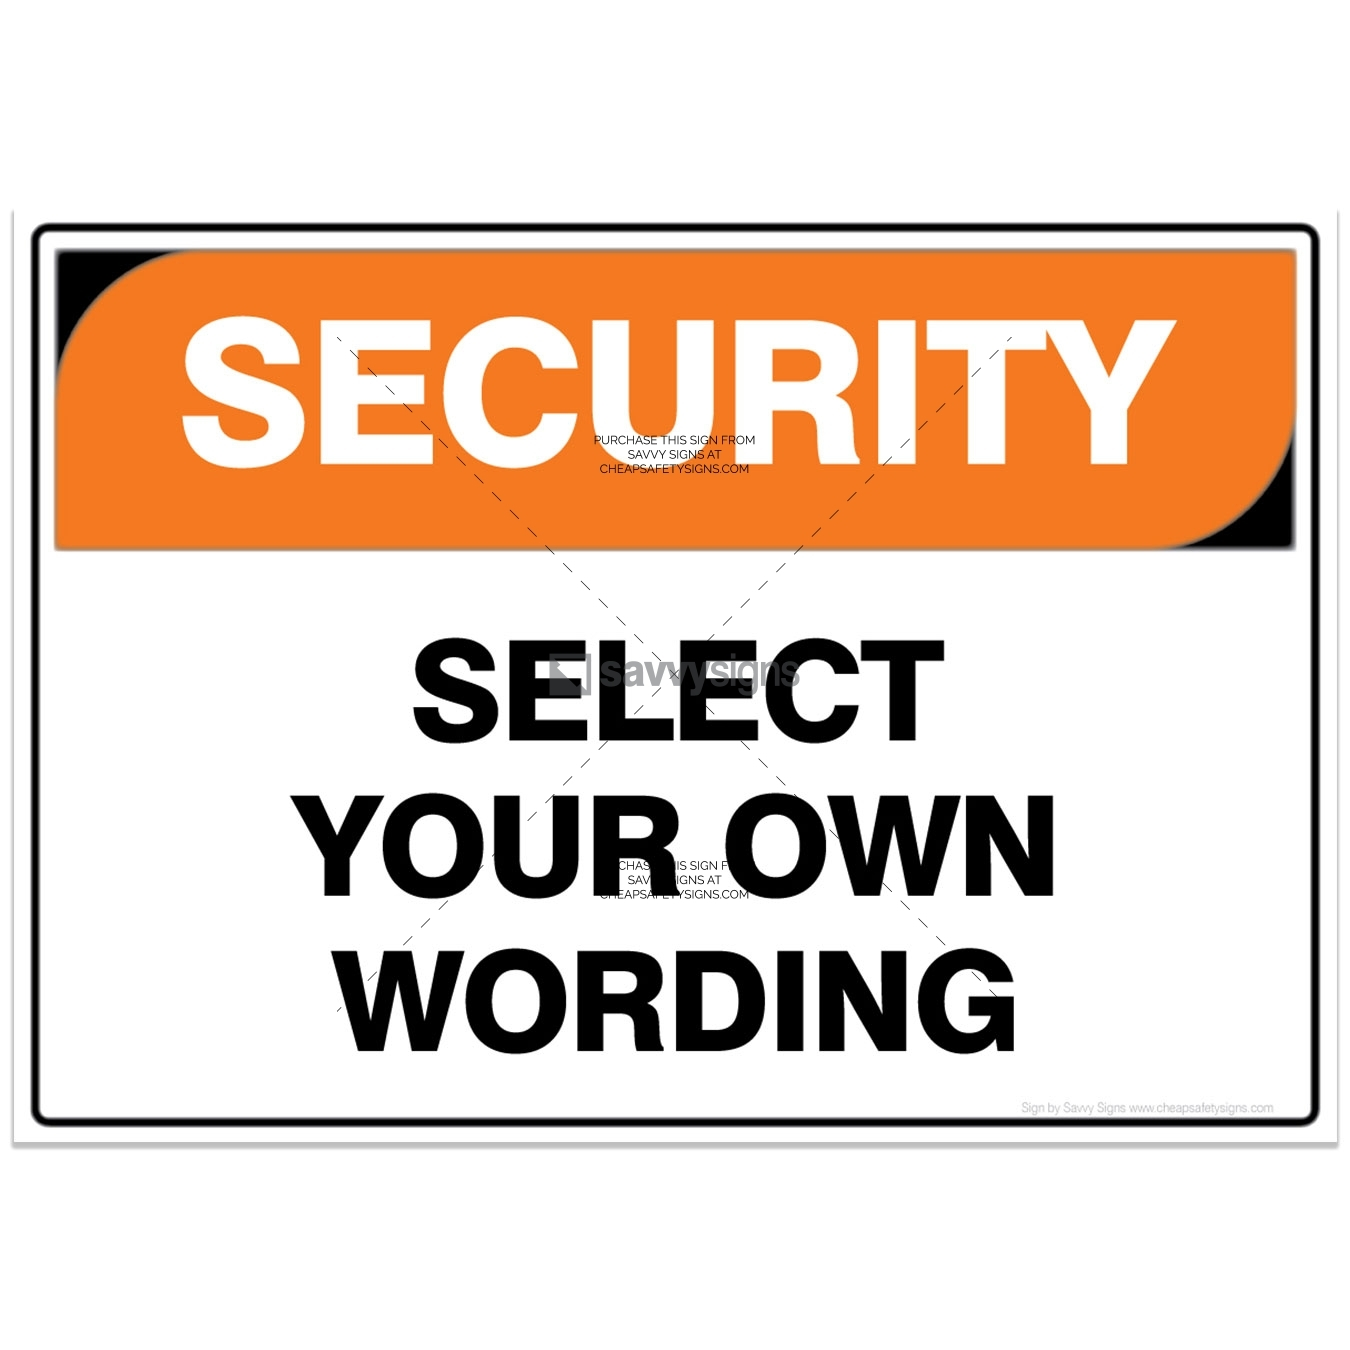 SSSEC3000-SECURITY-Workplace-Safety-Signs_Savvy-Signs_v3.1